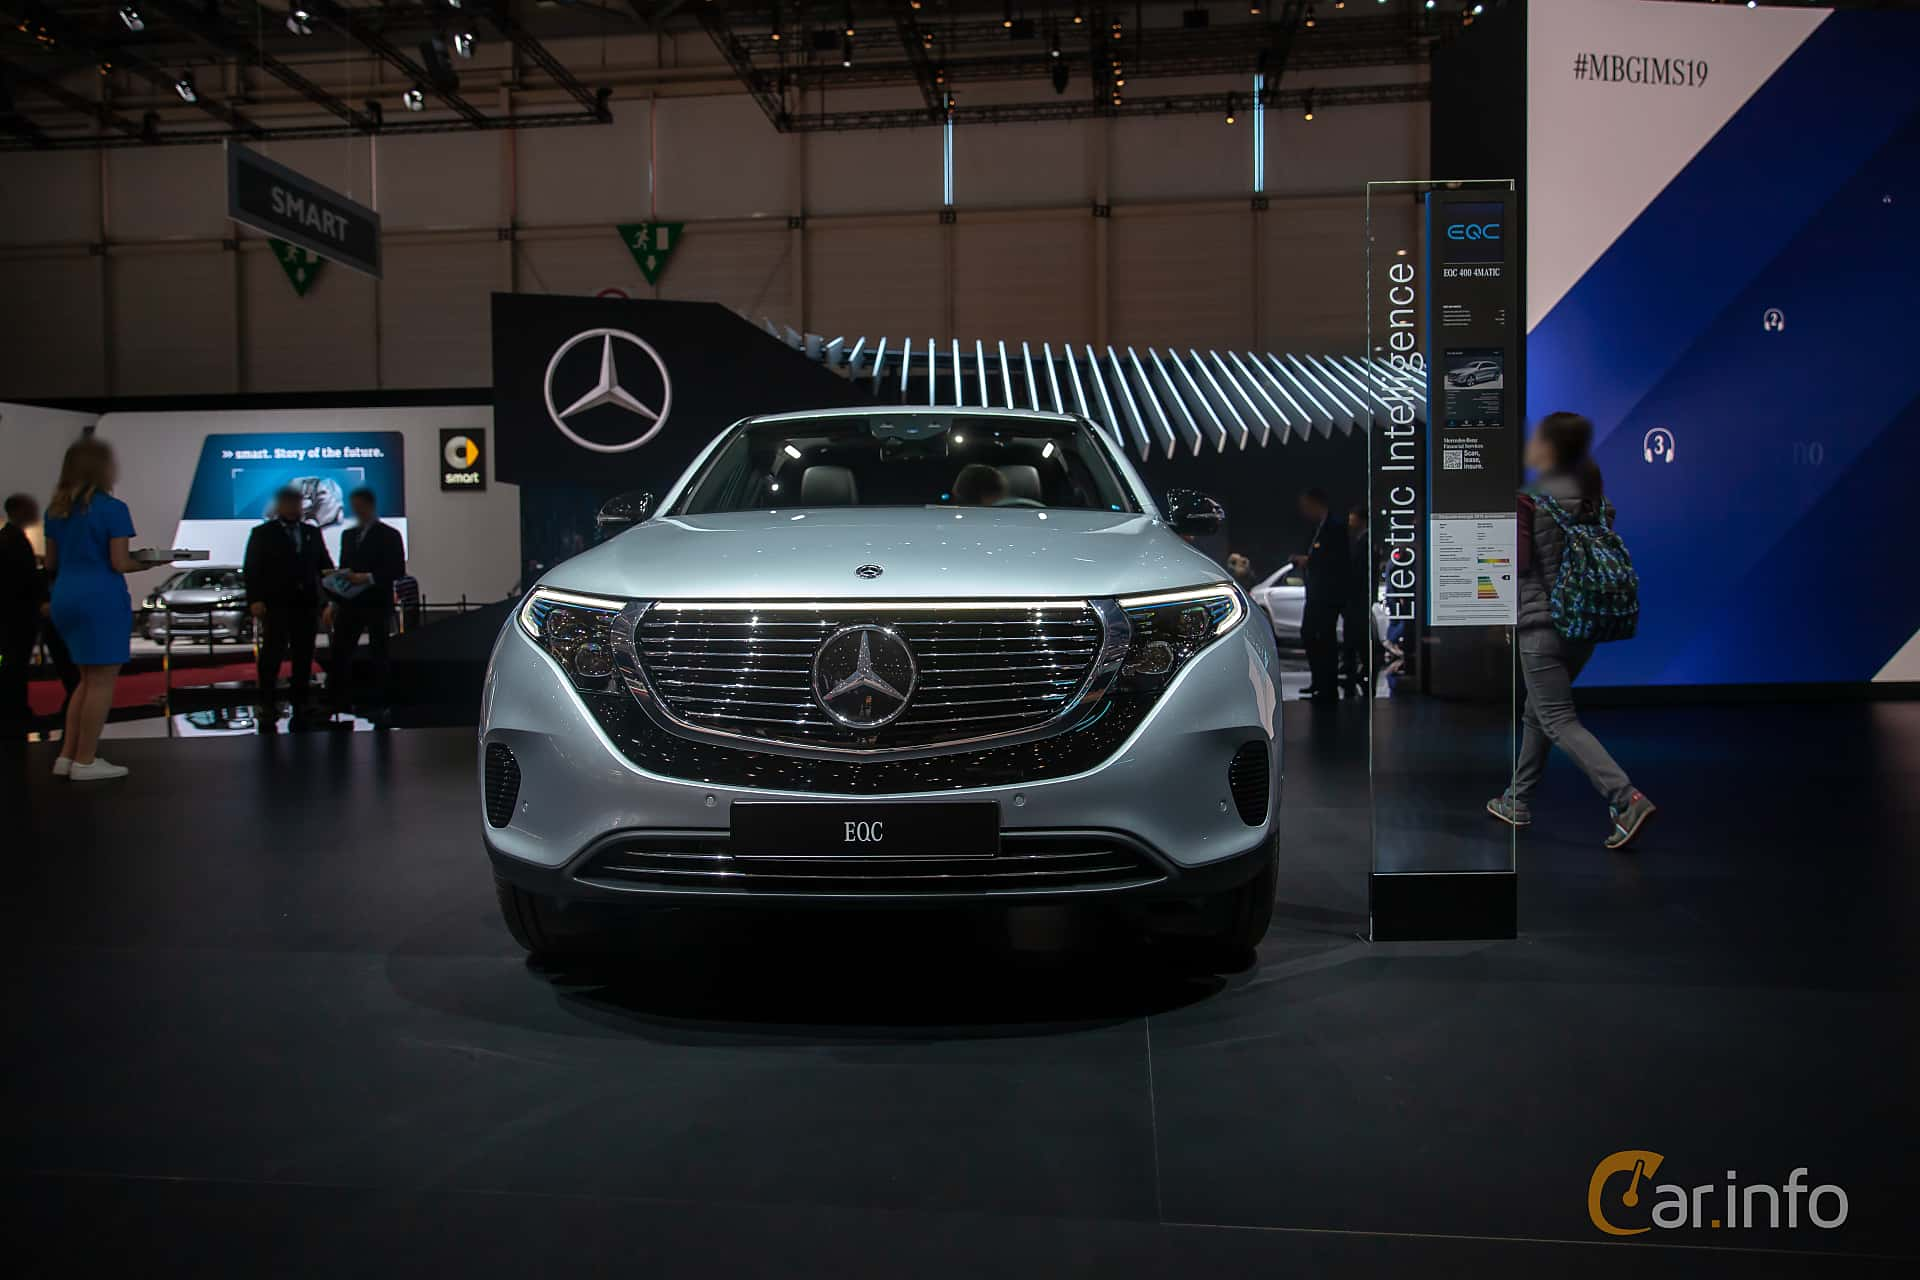 Mercedes-Benz EQC 400  Single Speed, 408hp, 2019 at Geneva Motor Show 2019